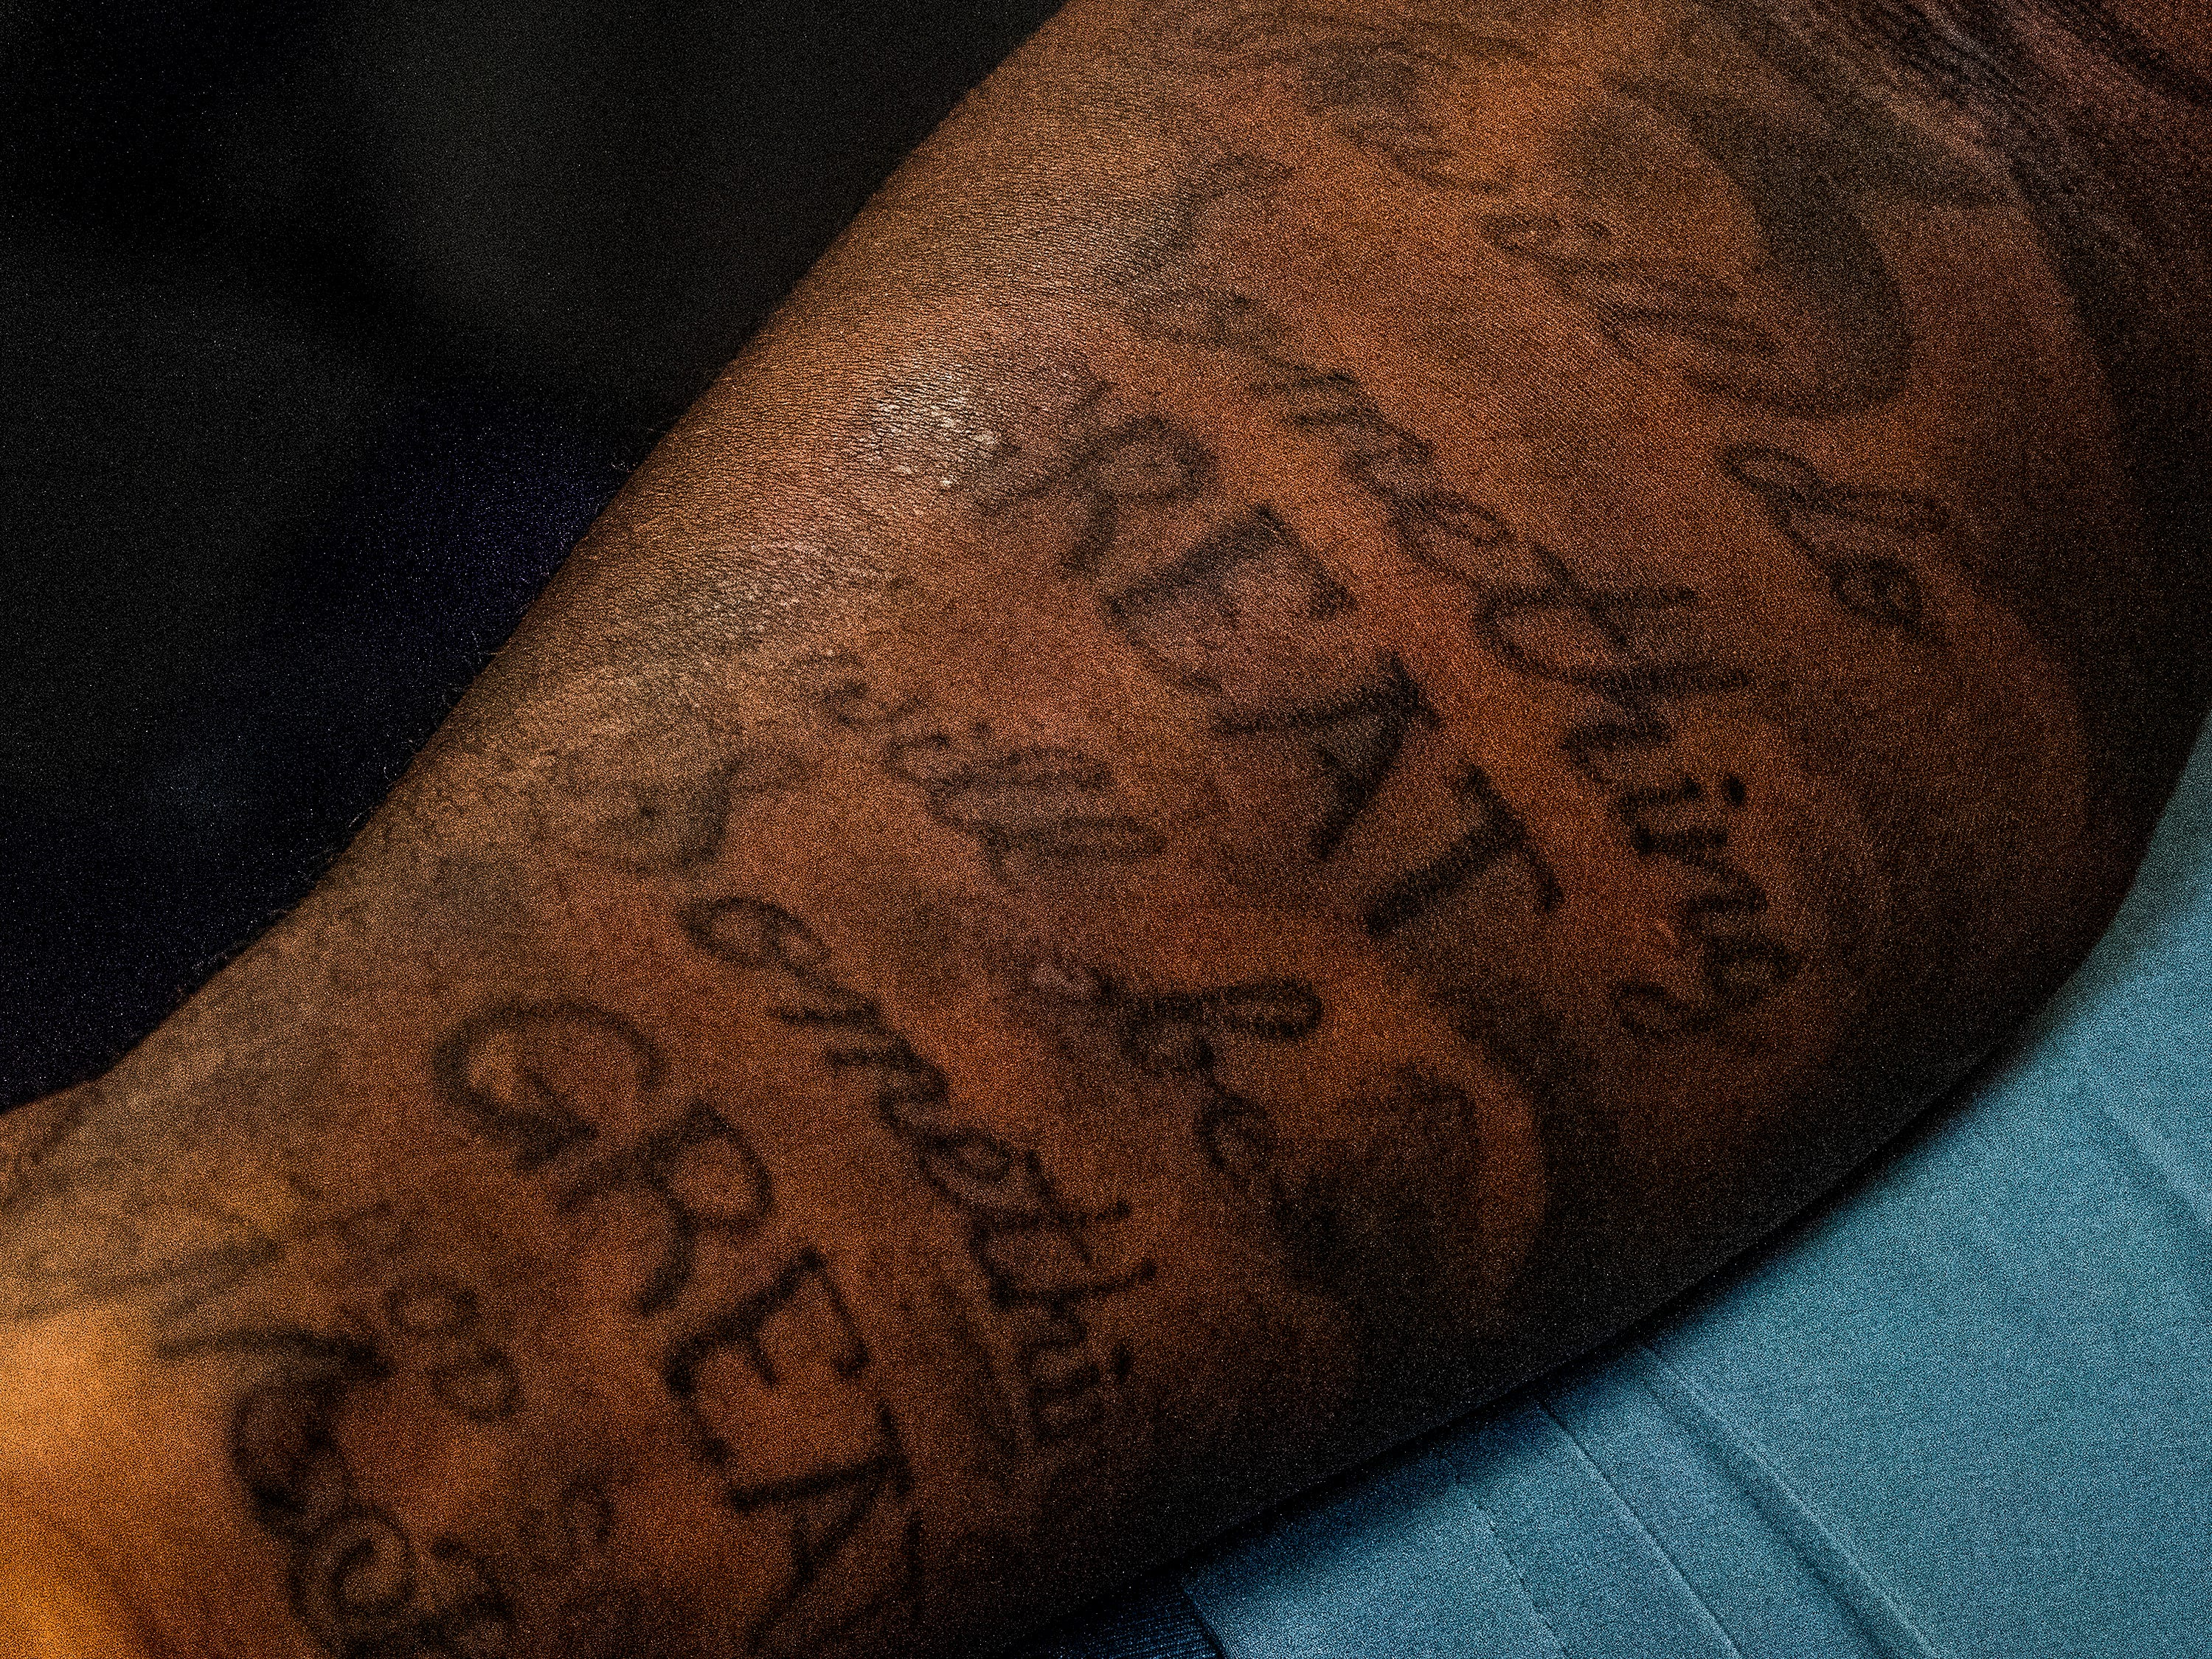 Alabama linebacker Mack Wilson, of Montgomery, shows a tattoo of a quote by his friend Rod Scott.